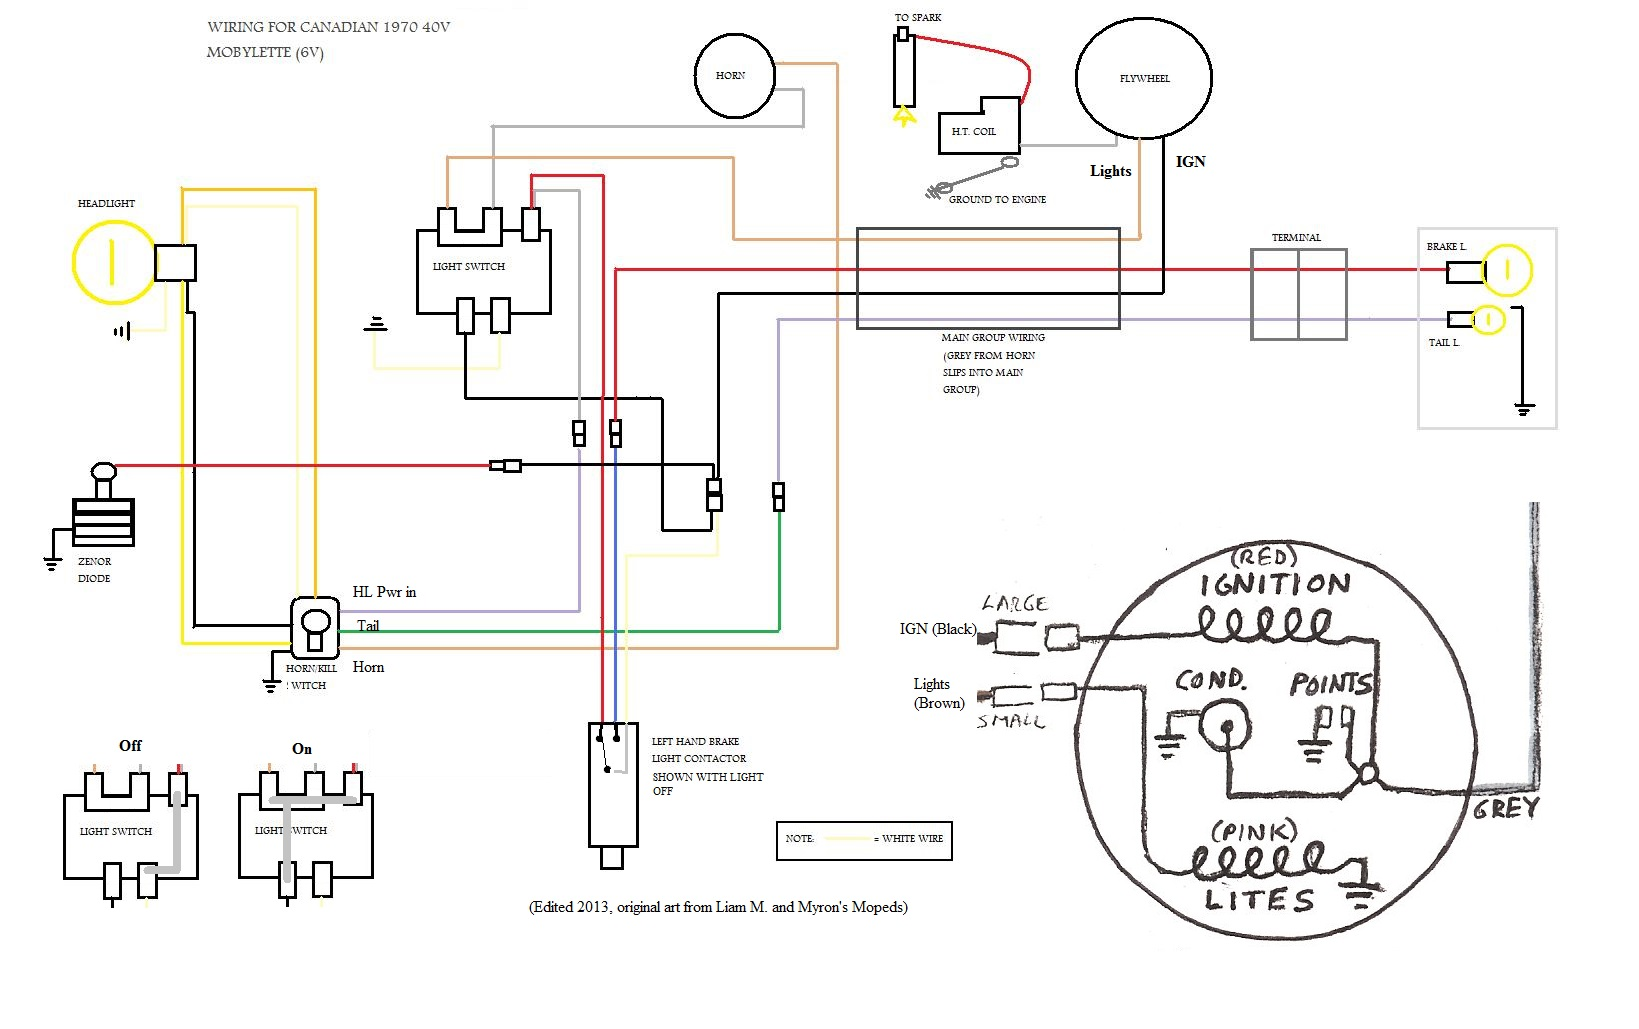 Canadian moby 40v wiring diagram (updated).jpg